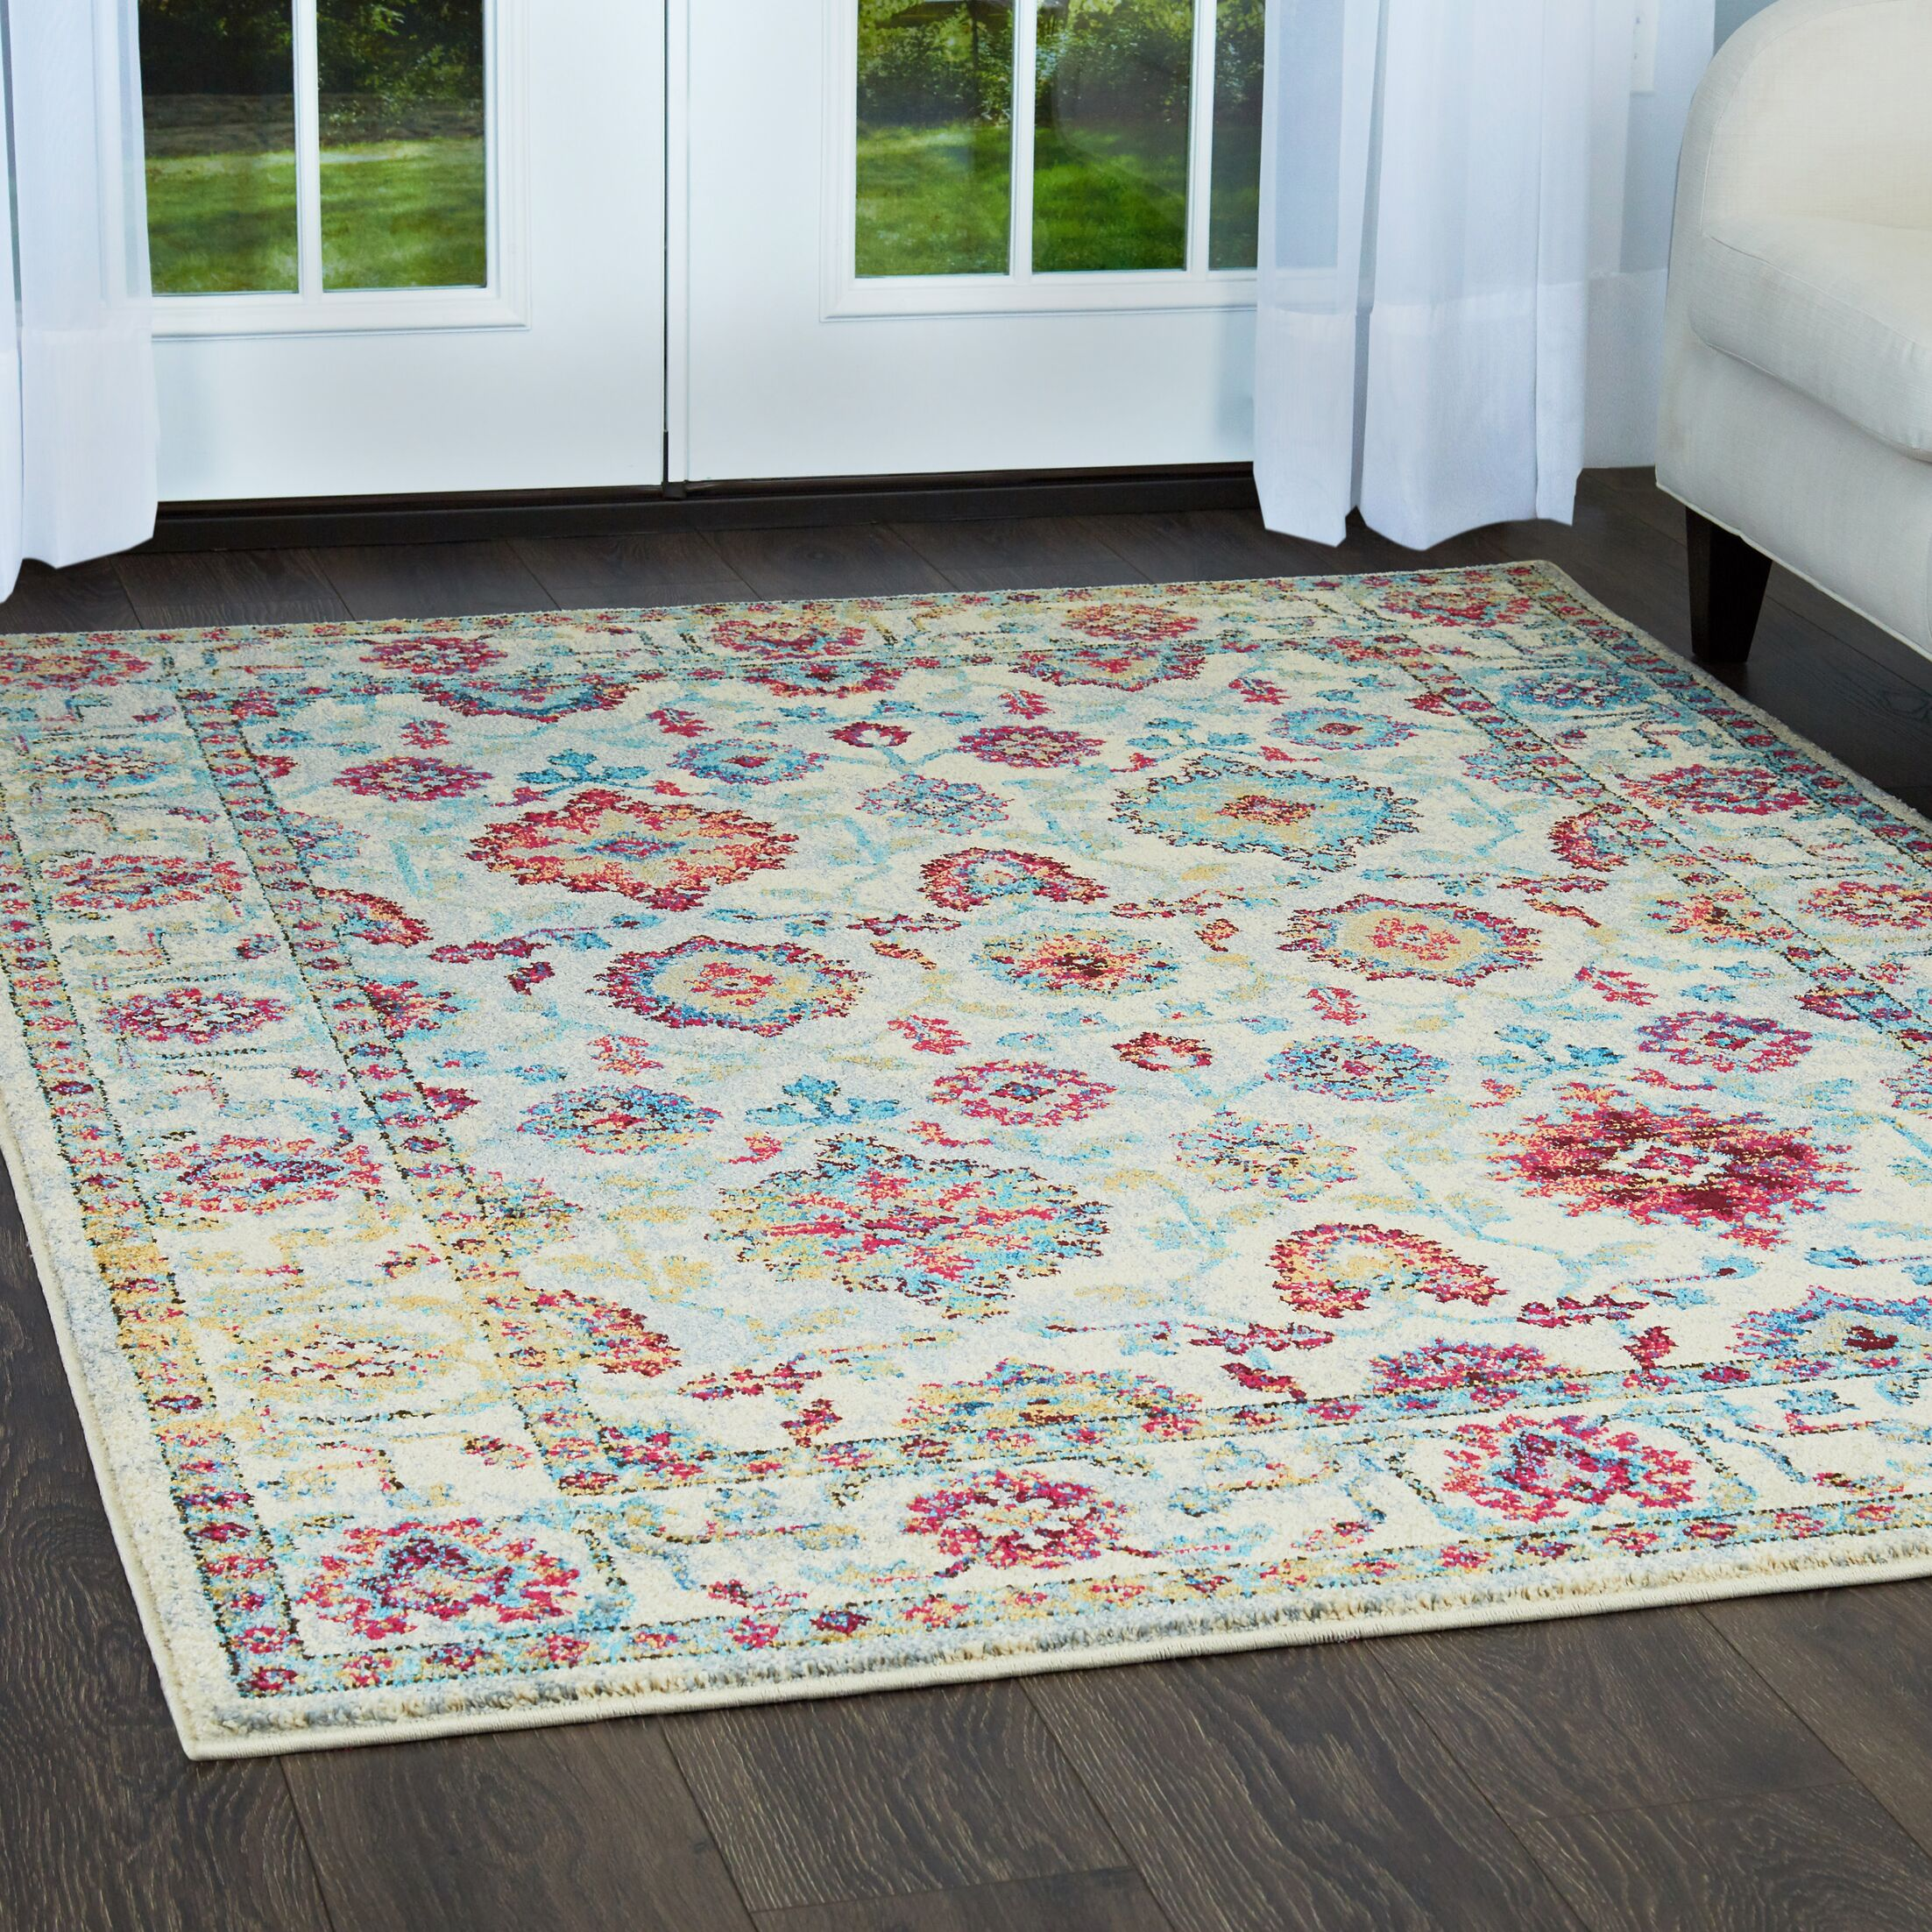 Moller Ronda Ivory/Red Area Rug Rug Size: Rectangle 7'9